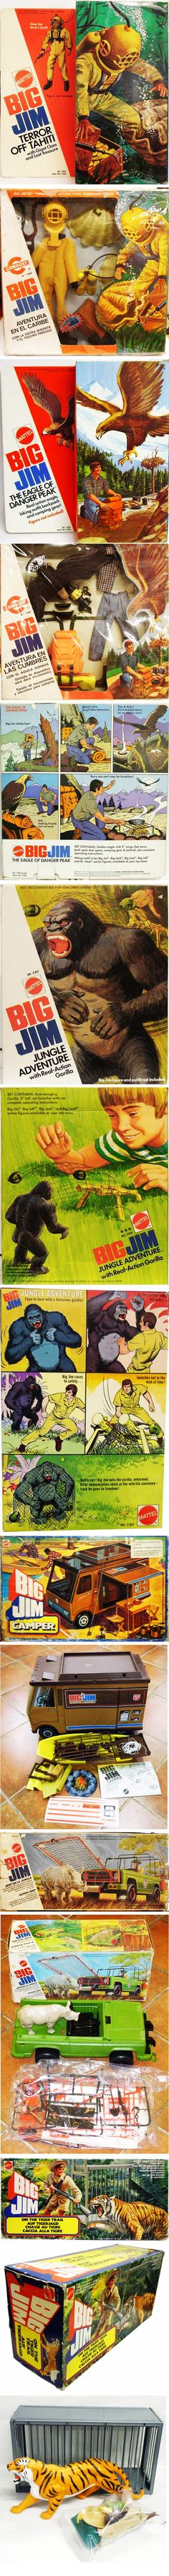 Big Jim Accessories by Mattel. I had Big Jim and the camper, but none of the rest of these accessories.